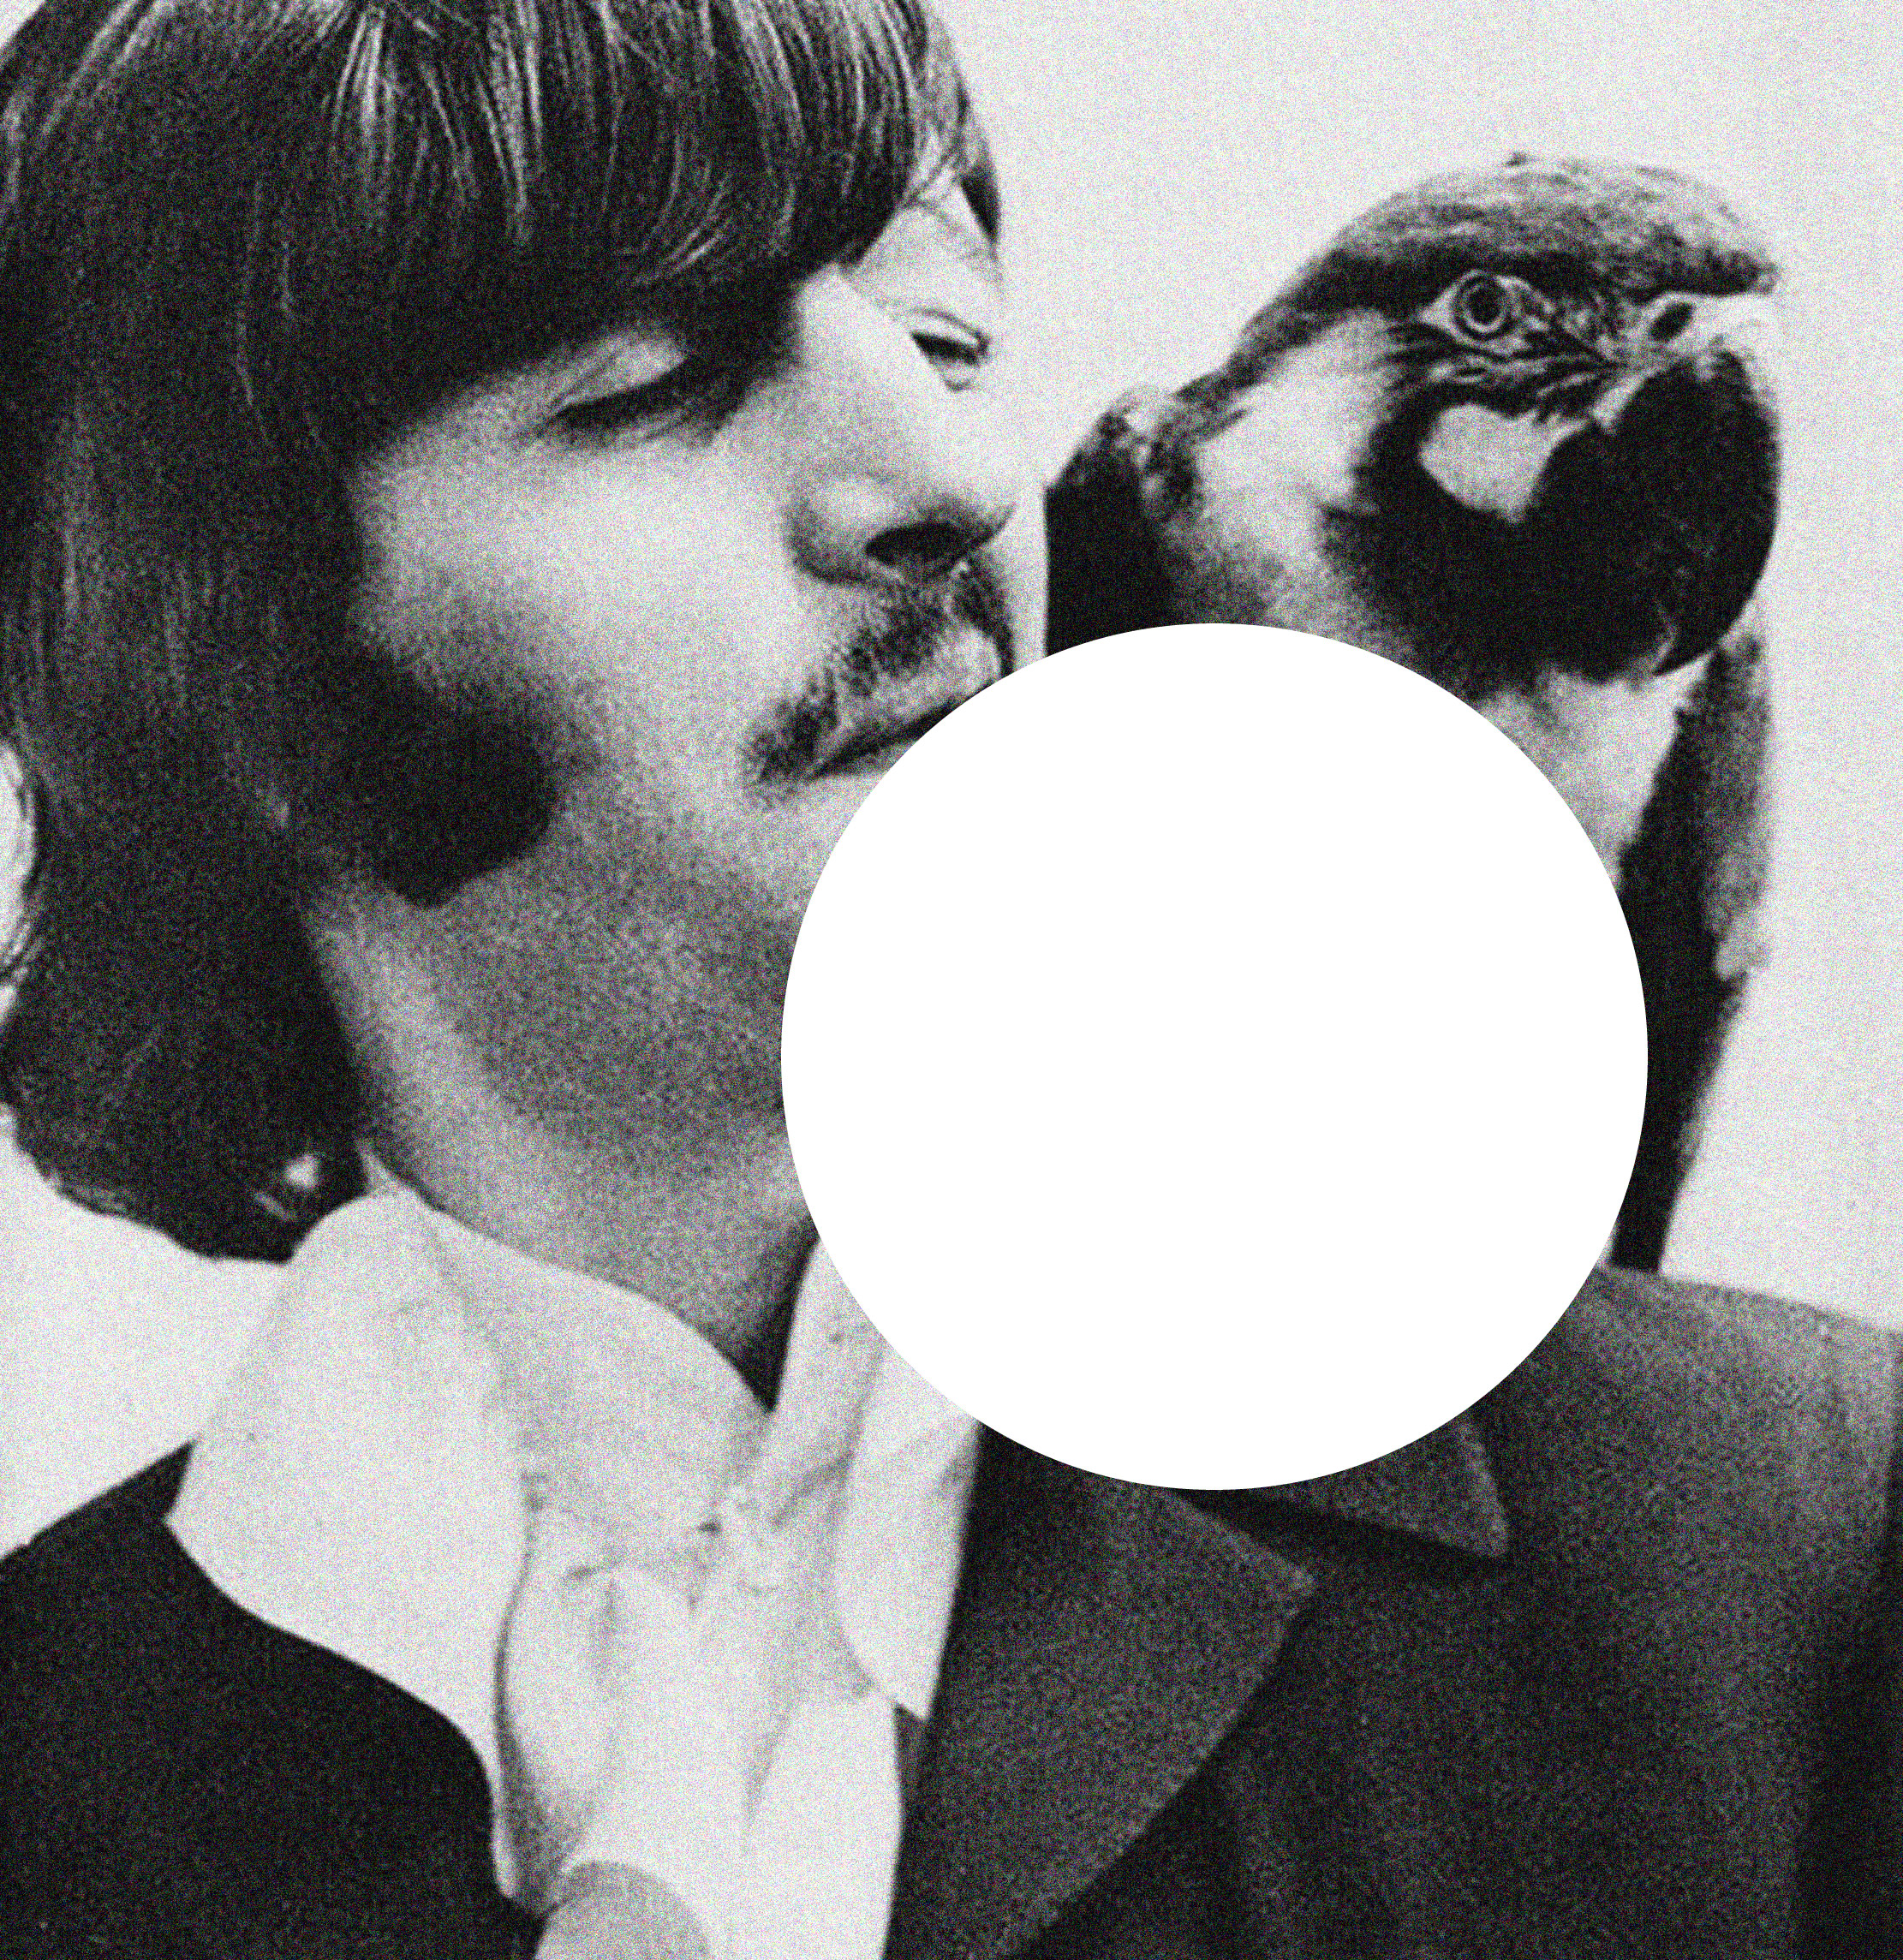 ringo and the parrot.jpg